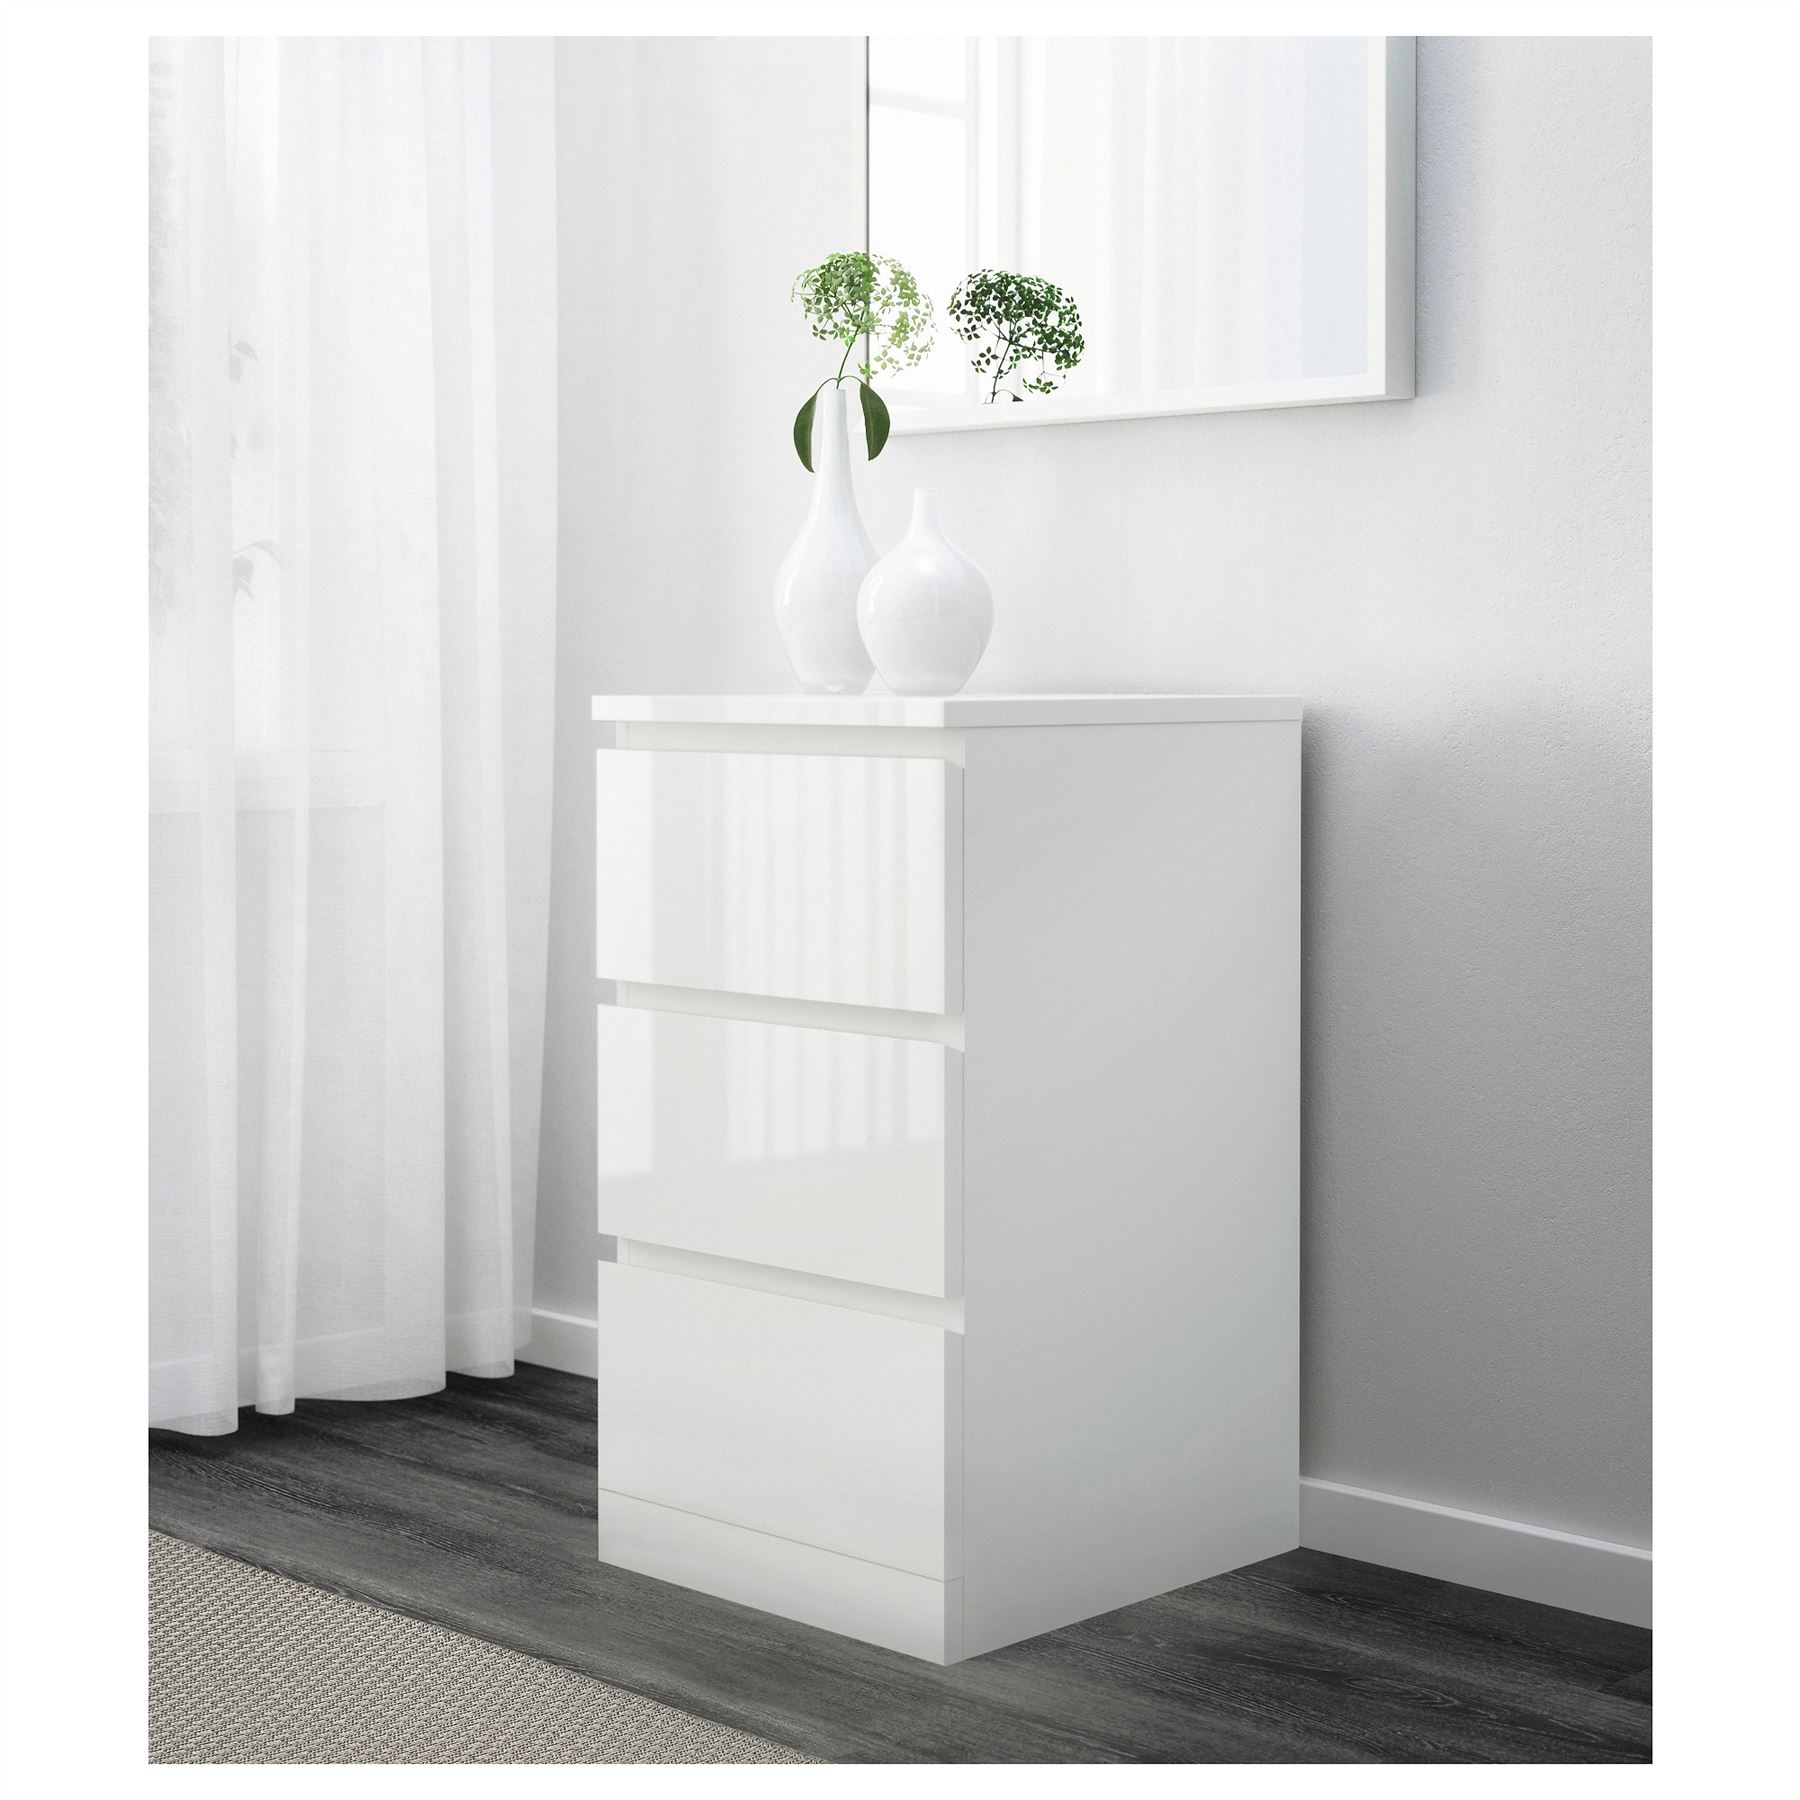 white bedroom furniture ikea. Ikea Malm Chest Of 3 Drawers 40x78cm White High Gloss Bedroom Furniture